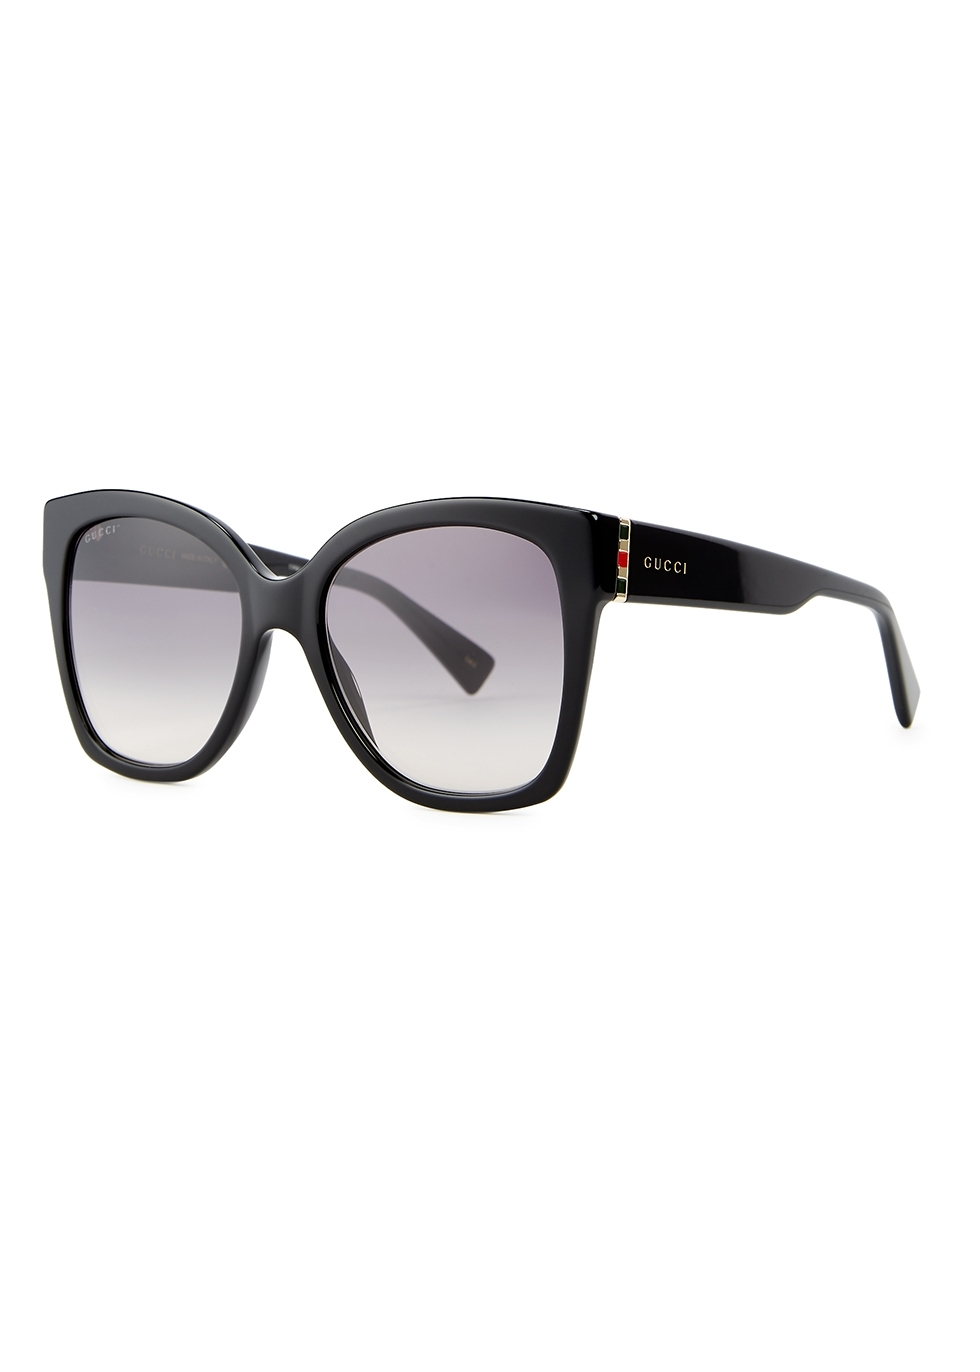 ce617fc1b3a Gucci Sunglasses - Womens - Harvey Nichols